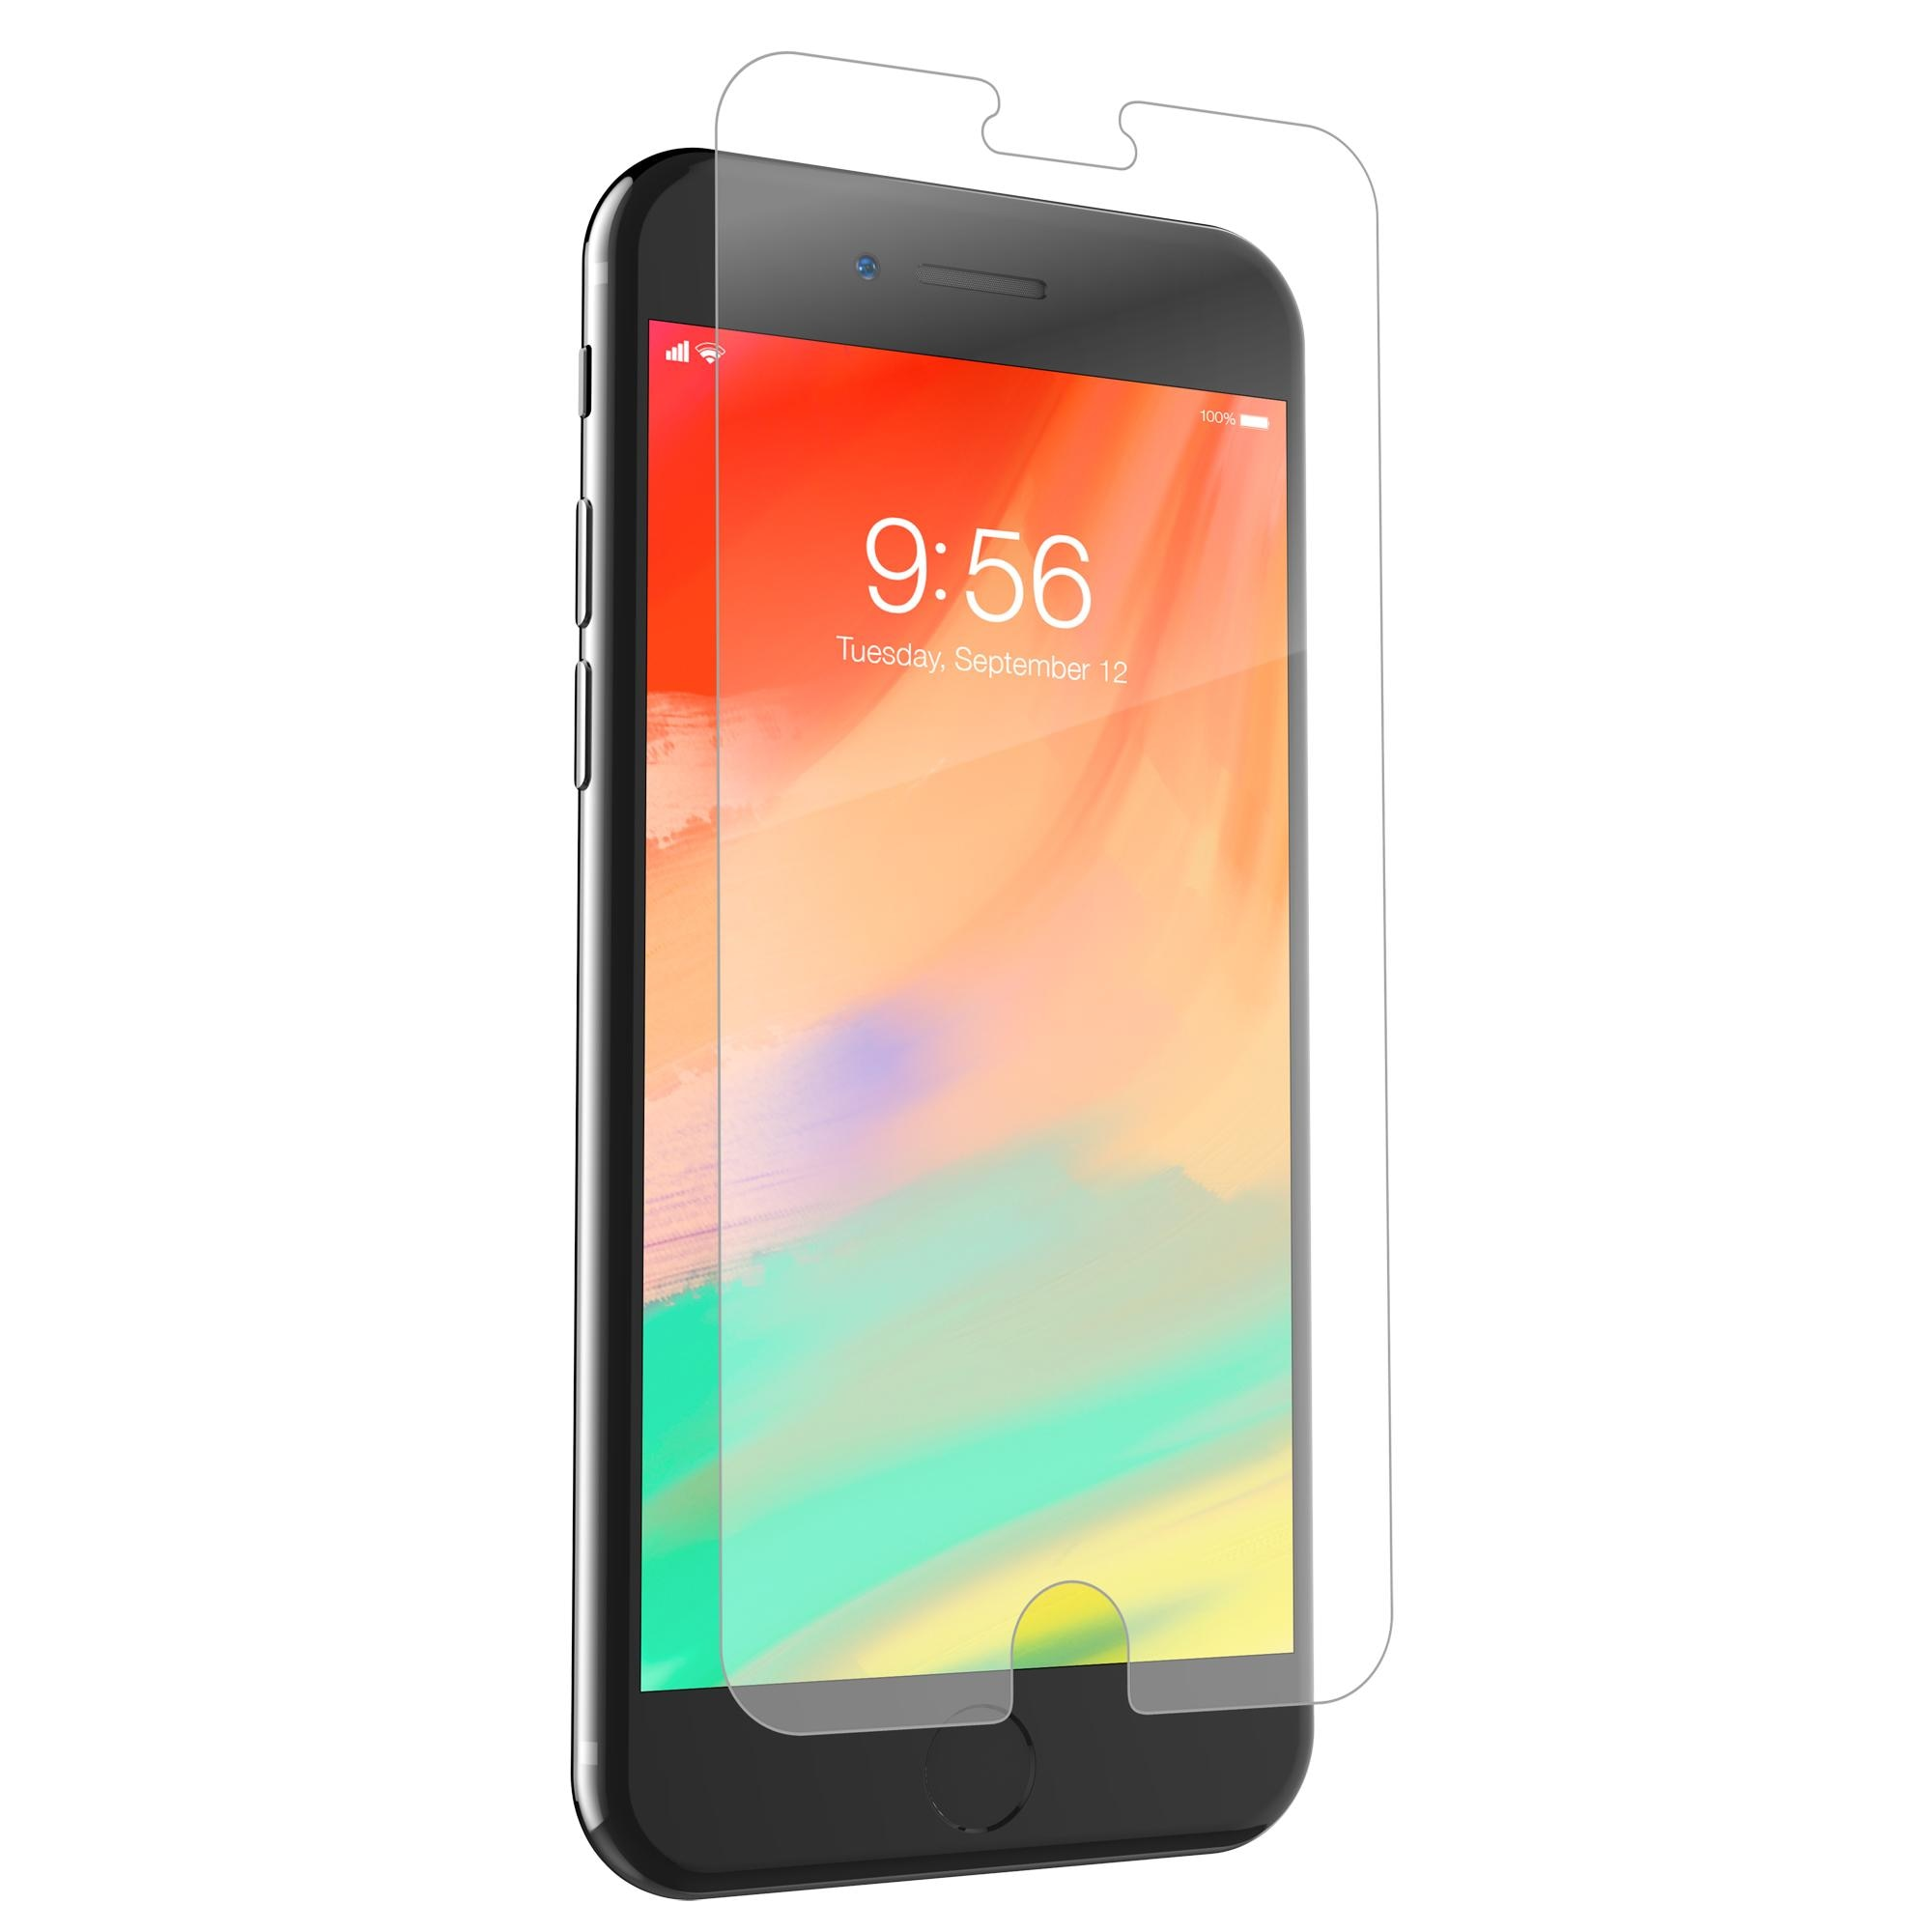 InvisibleShield Glass Plus for iPhone 6/6S/7/8 Plus